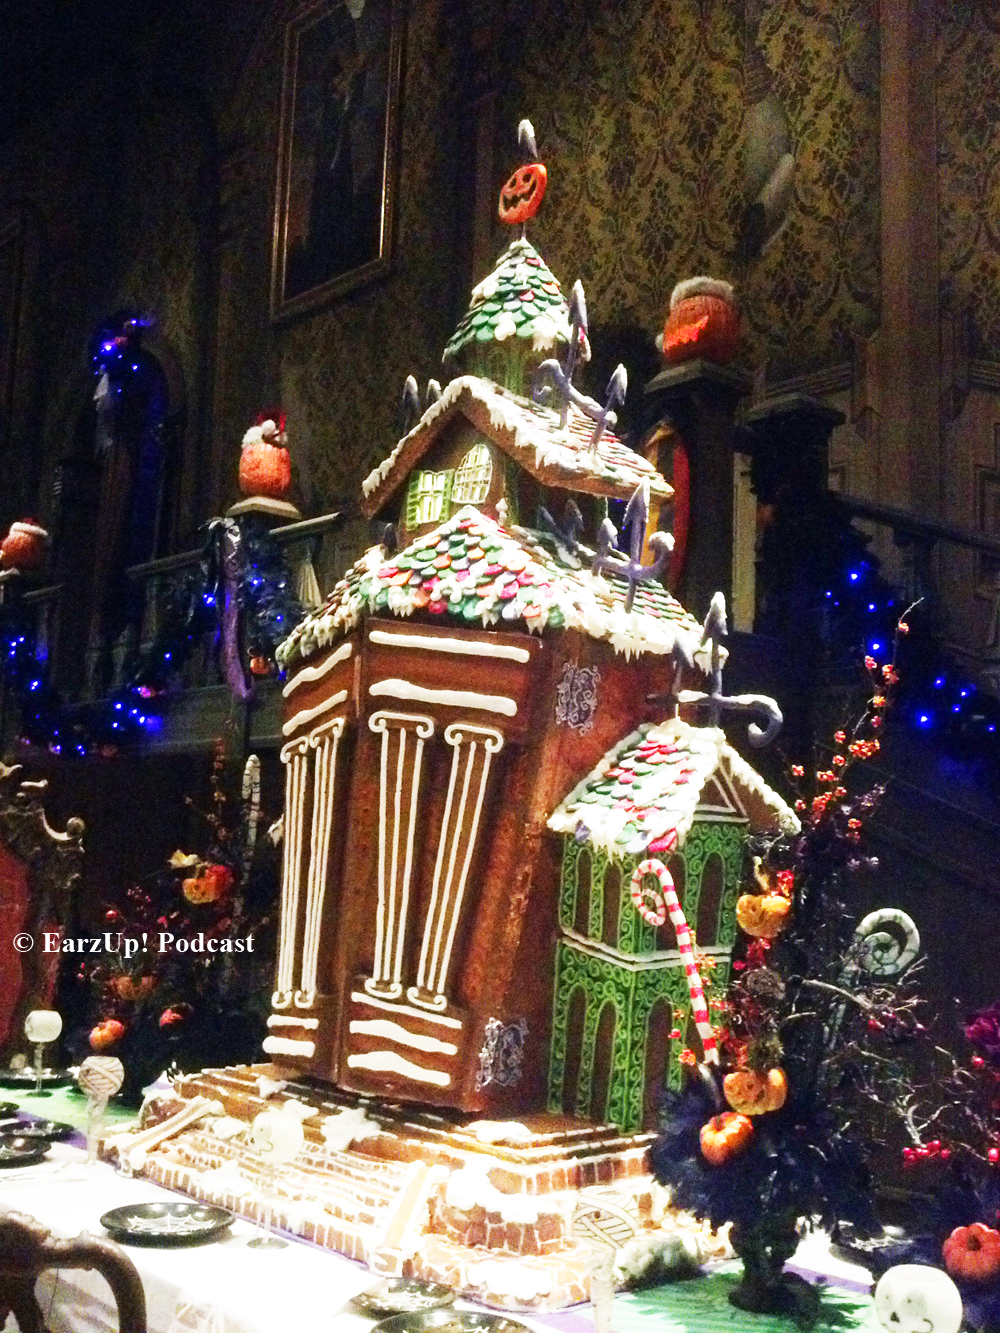 exclusive haunted mansion gingerbread house 2014 - Nightmare Before Christmas Gingerbread House